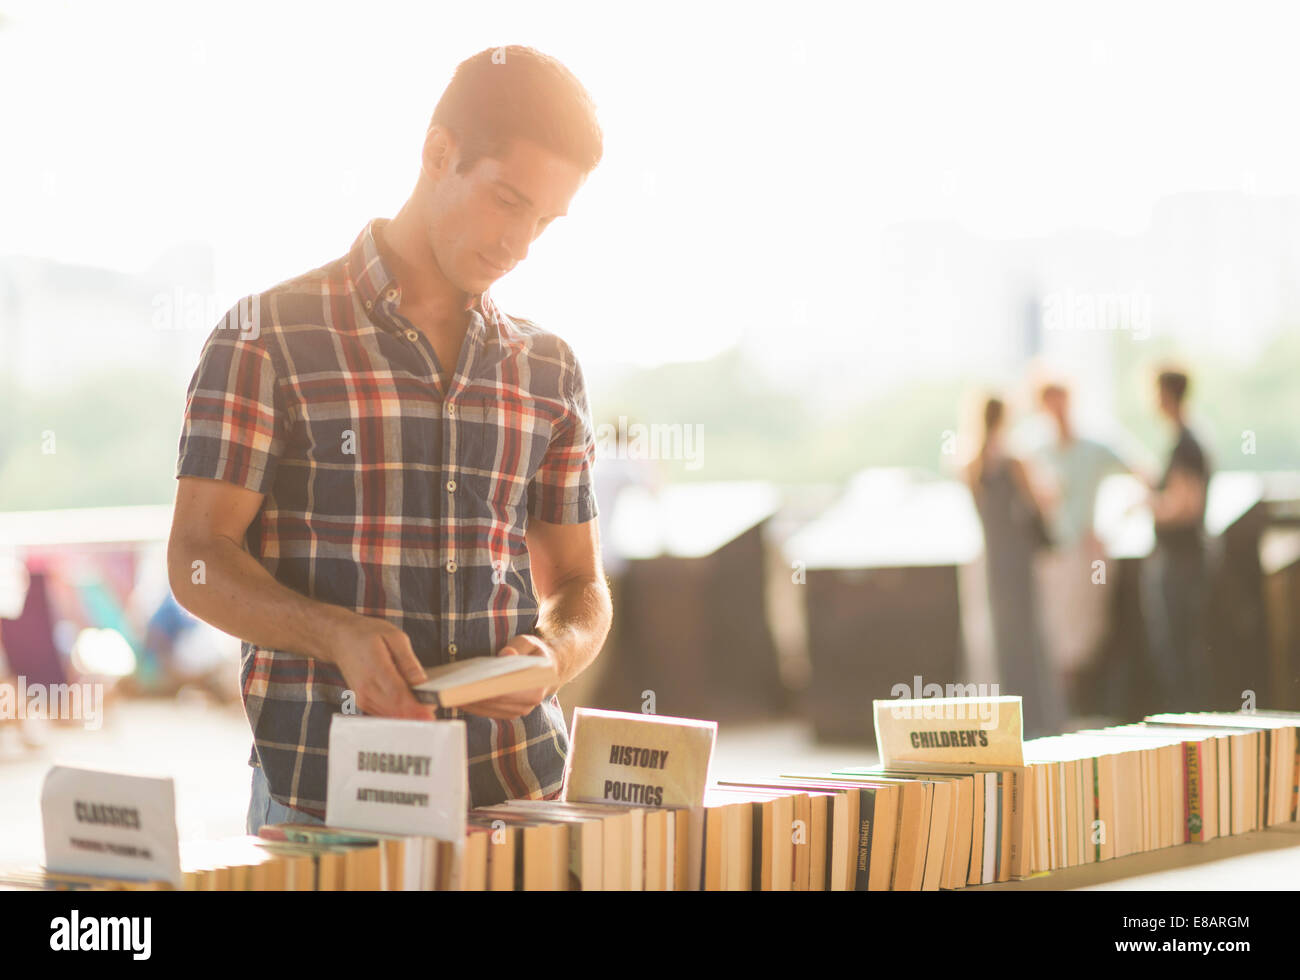 Young man at second hand book stall - Stock Image